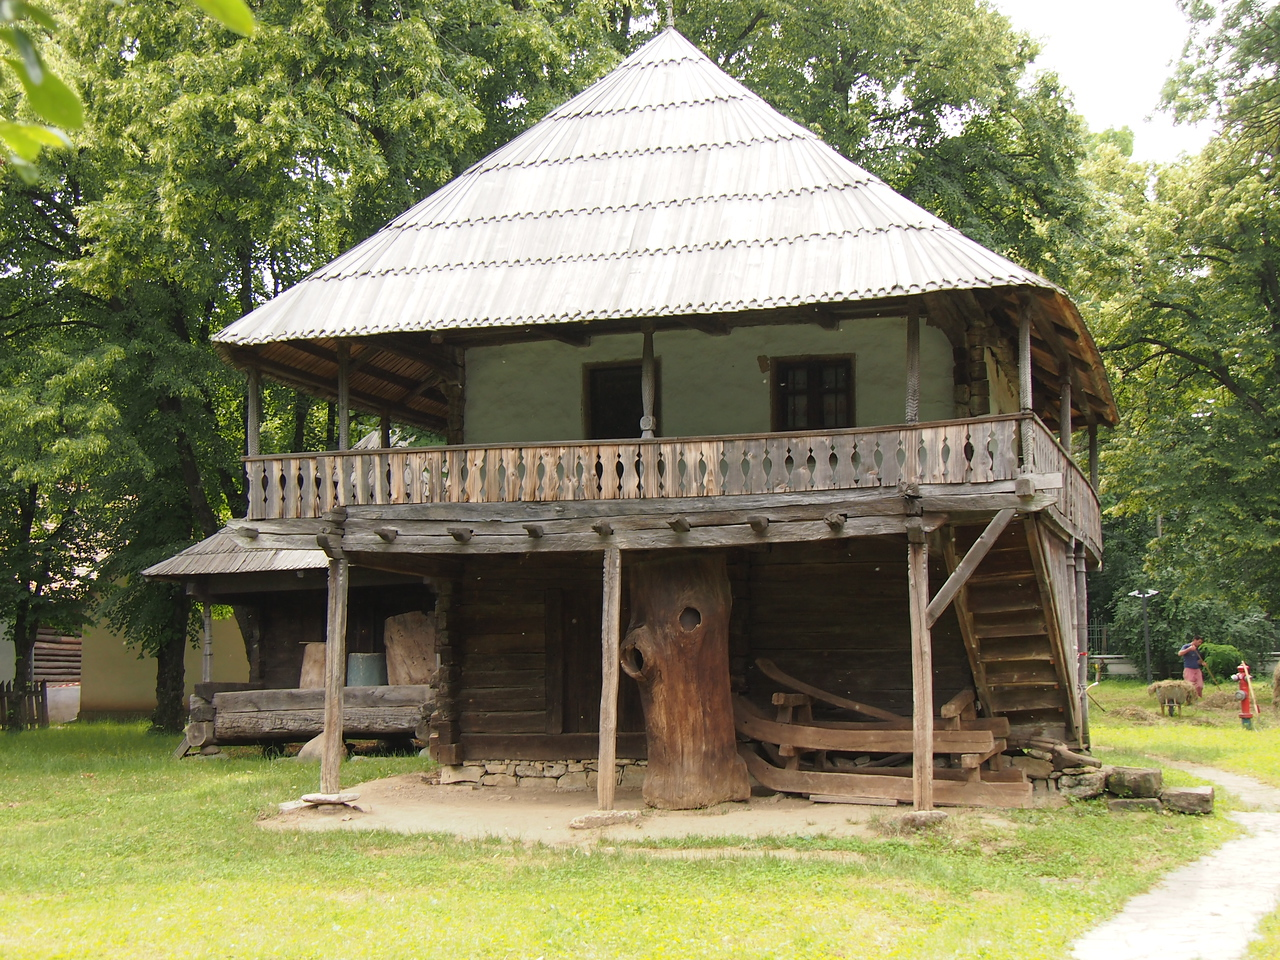 Dimitrie Gusti National Village Museum